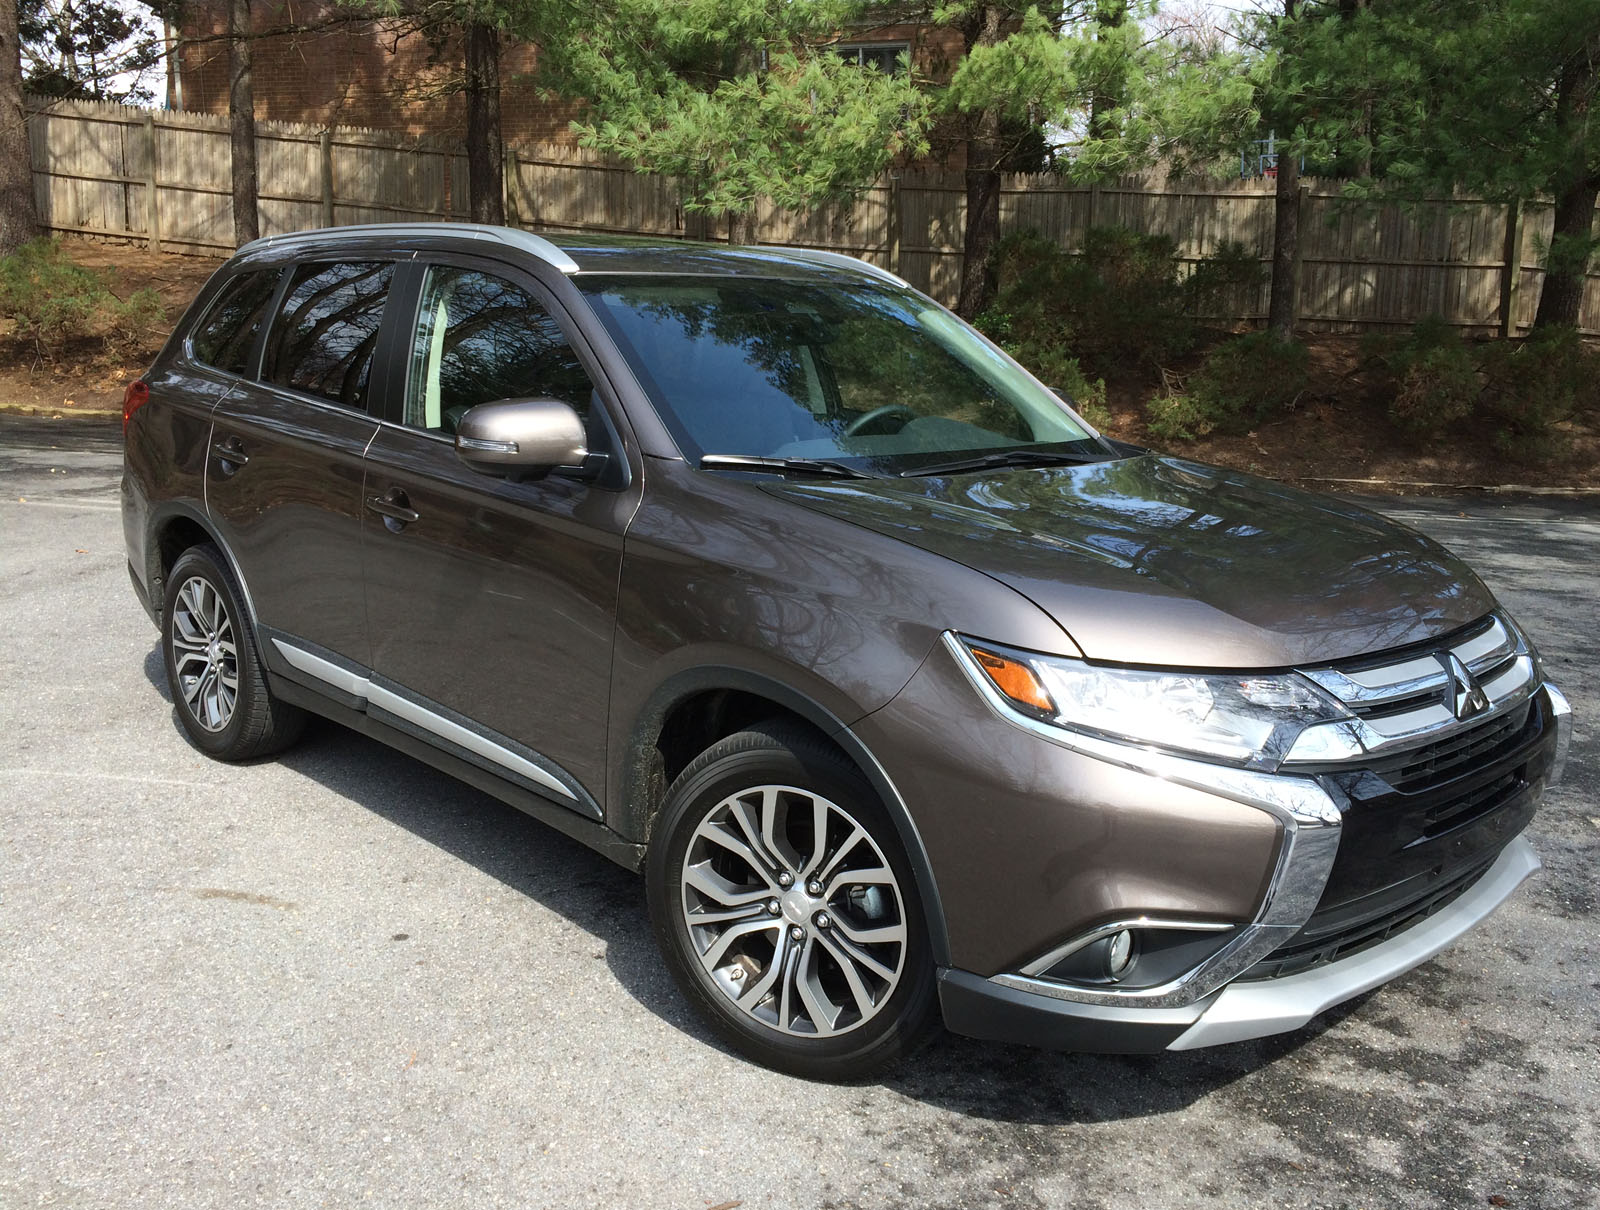 2017 Mitsubishi Outlander seats 7 with affordable price tag